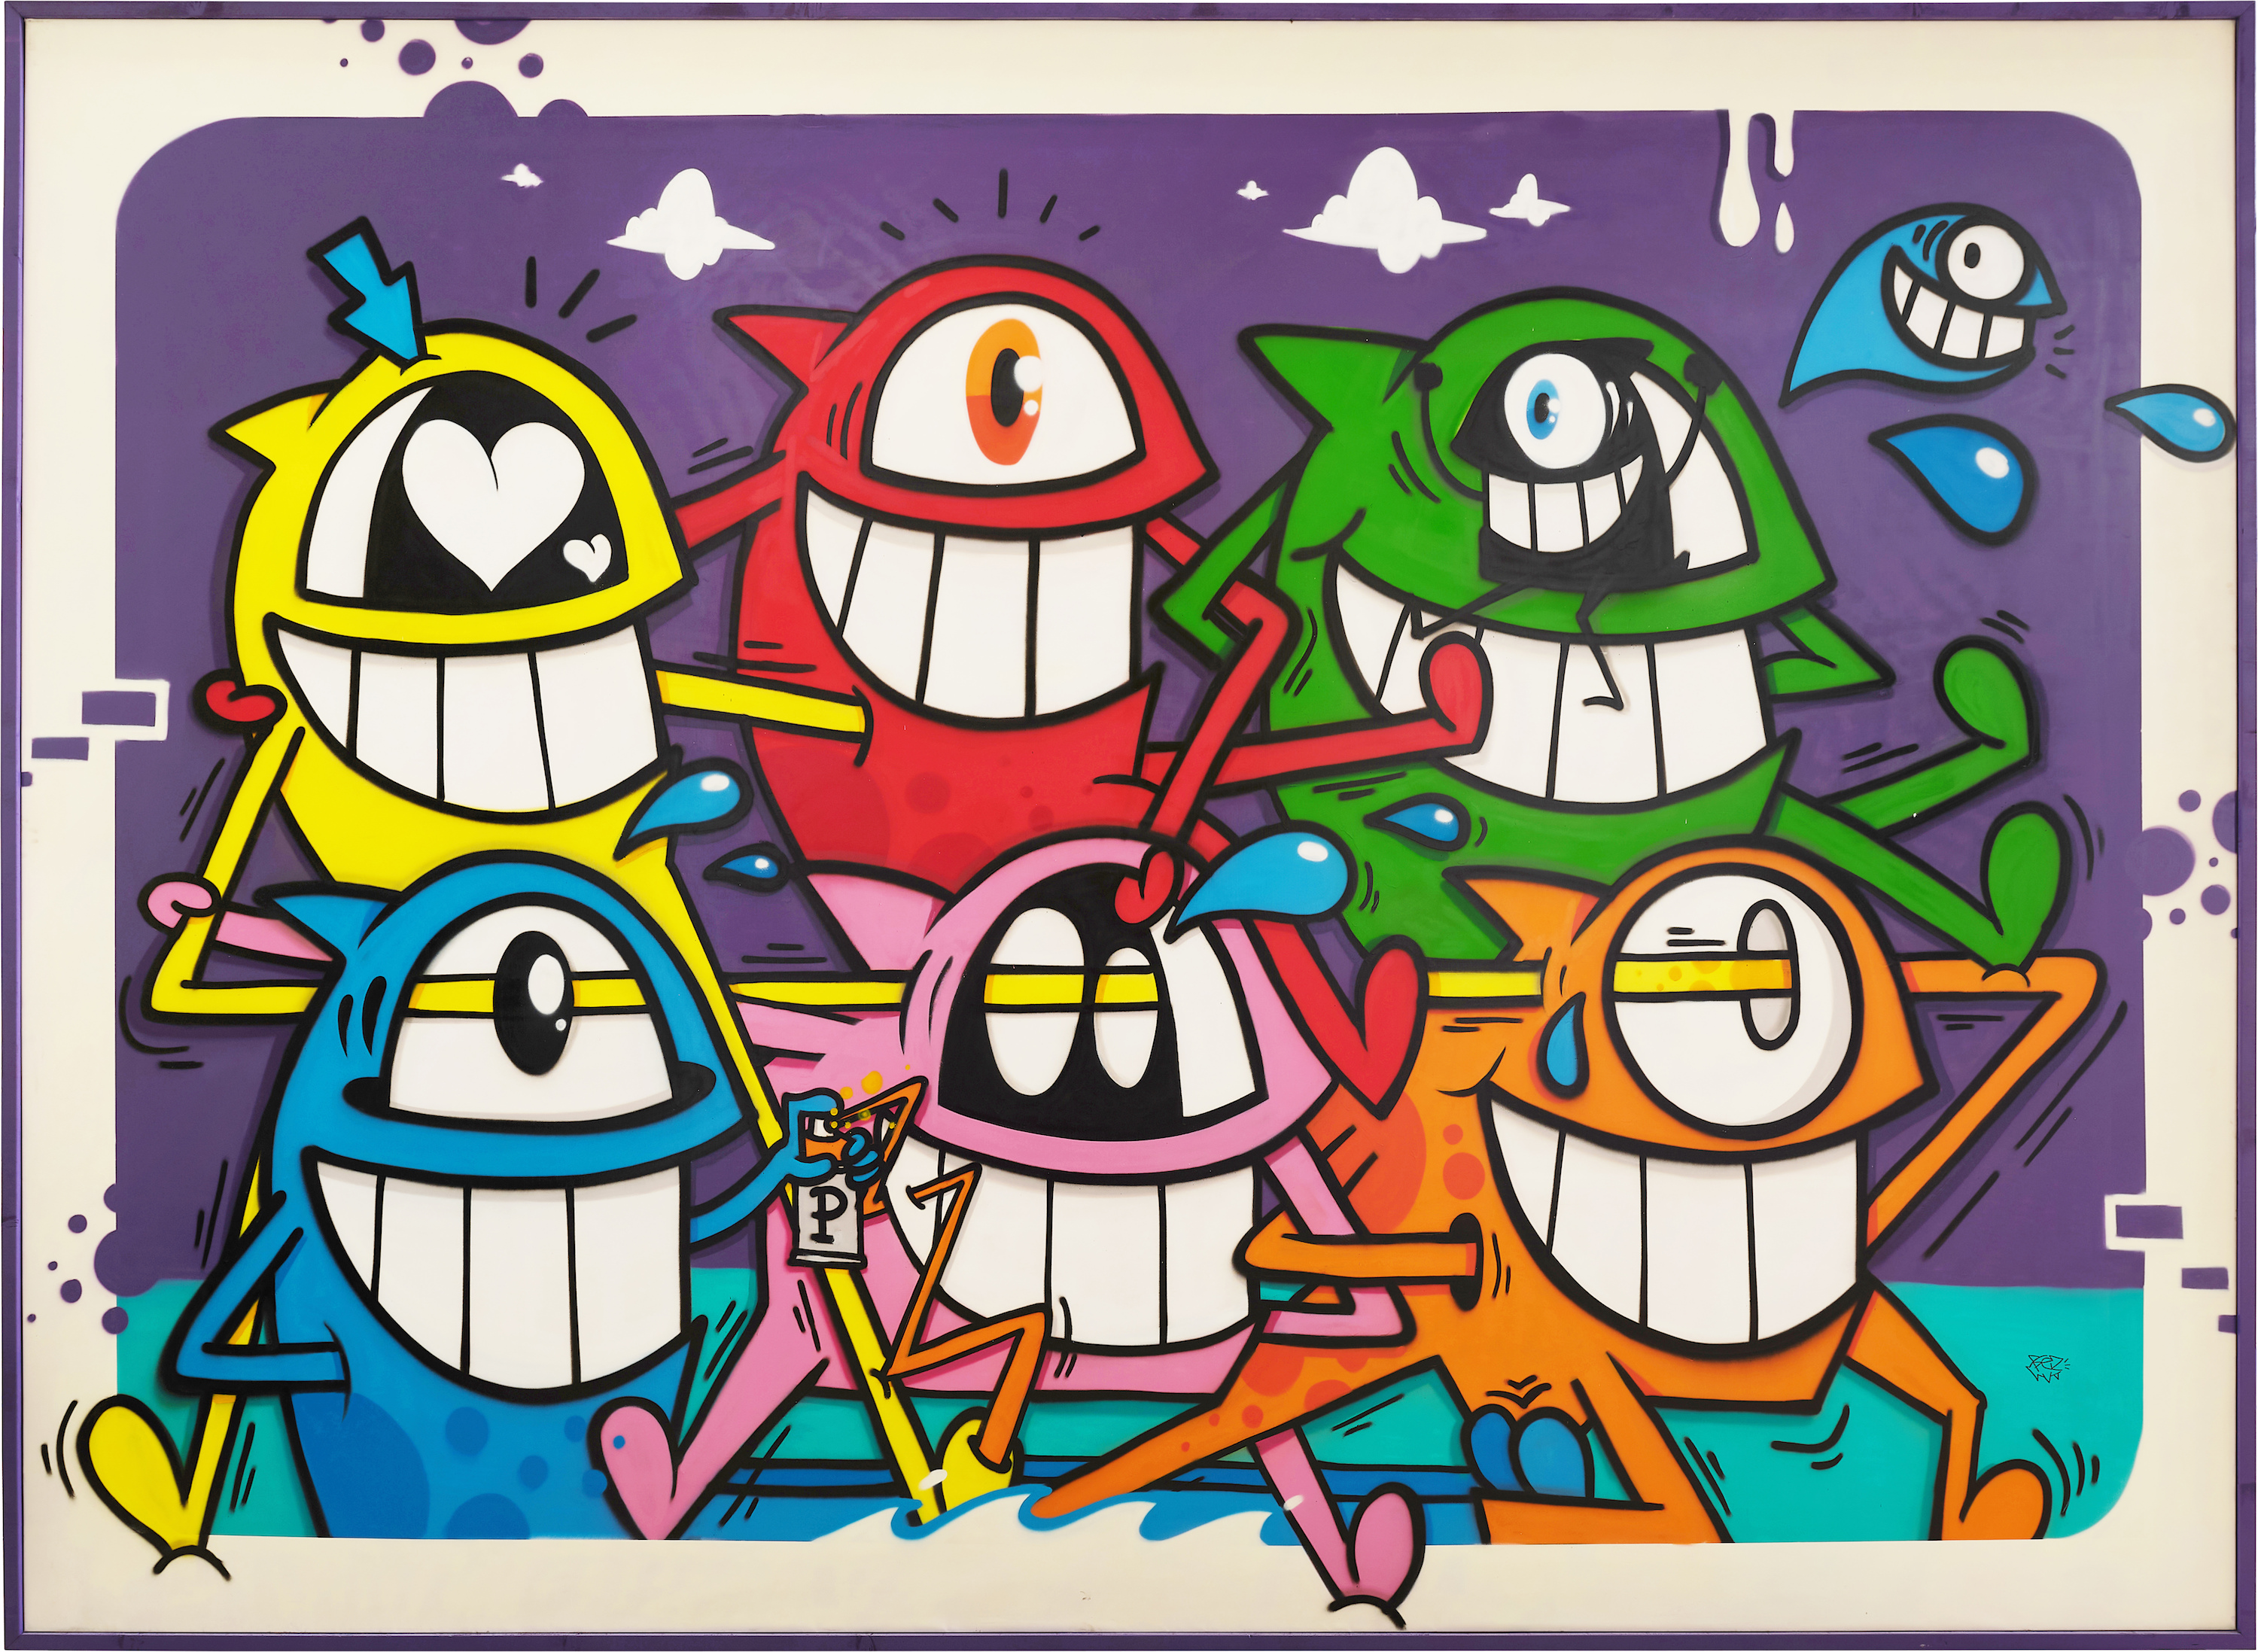 Pez painting Happy connections Straat International Street Art Museum